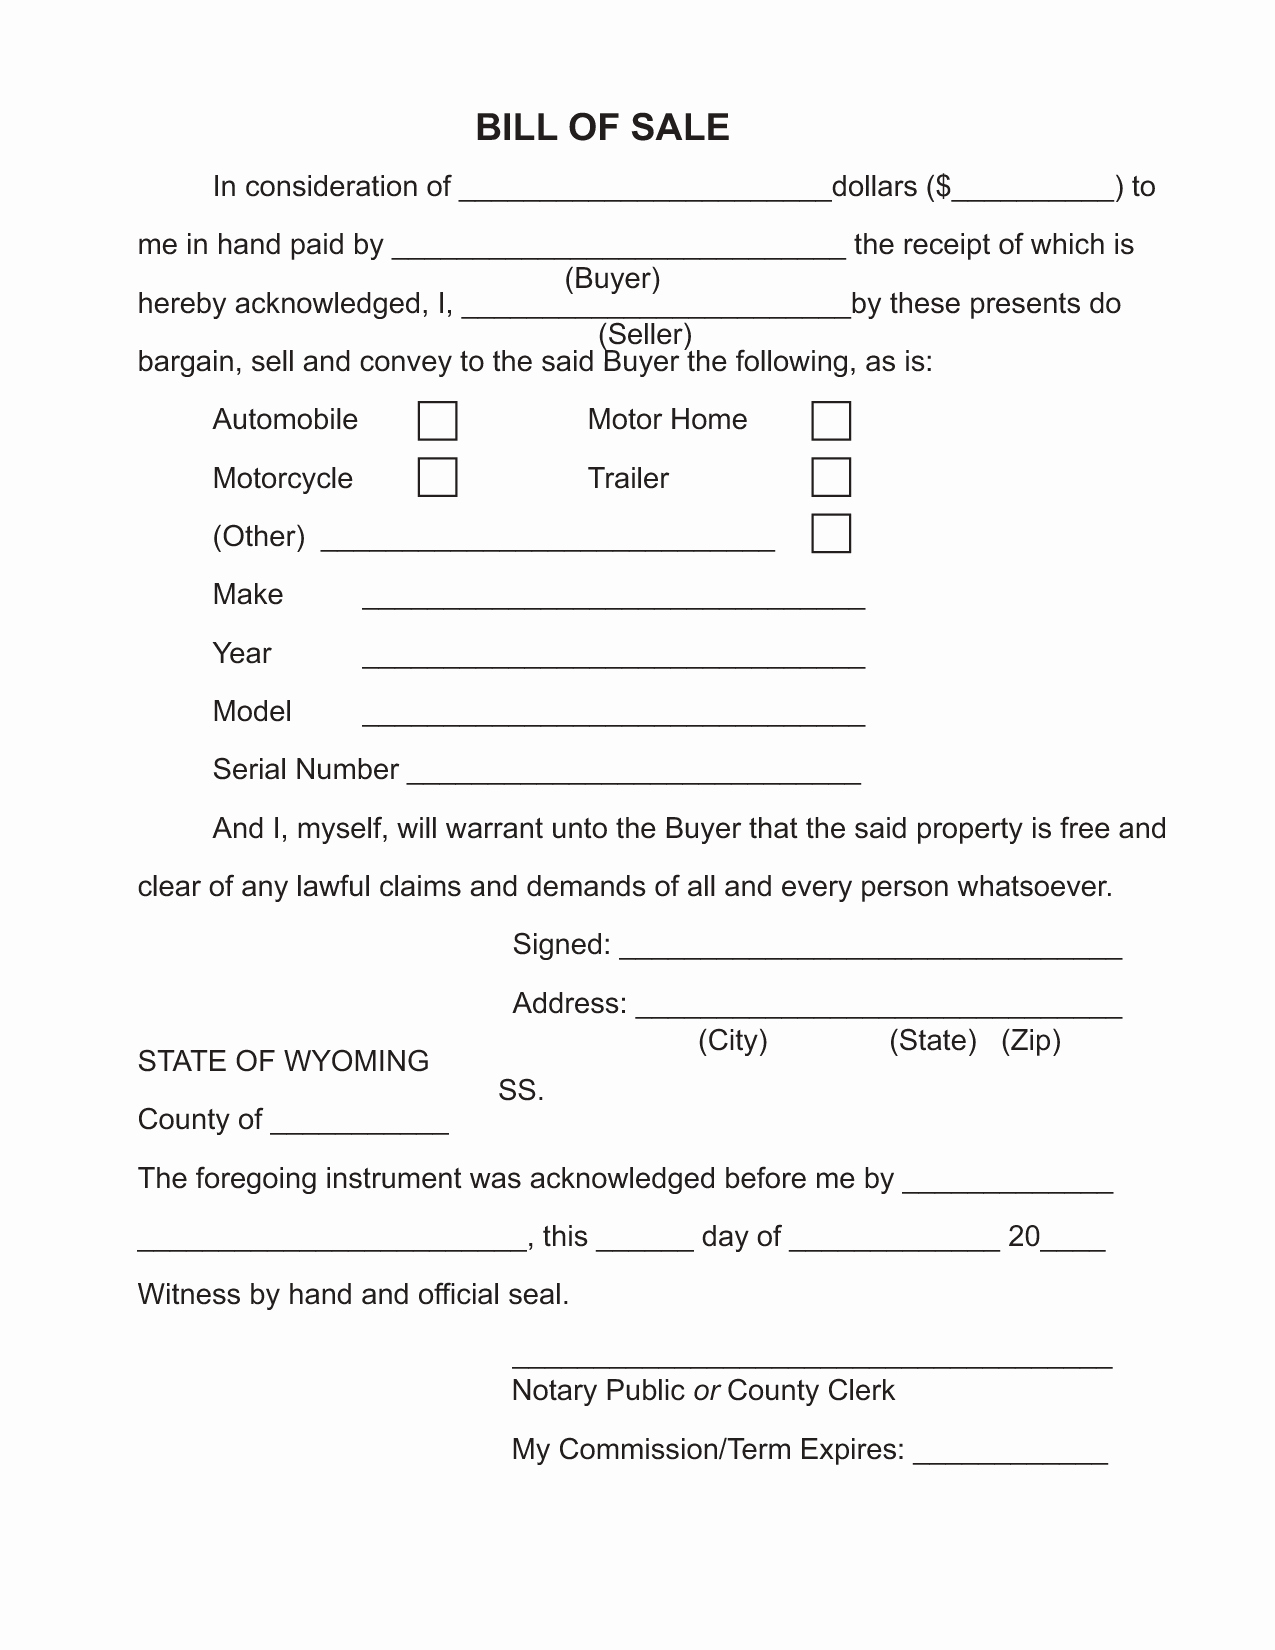 Create A Bill Of Sale Luxury Free Printable Bill Of Sale Camper form Generic